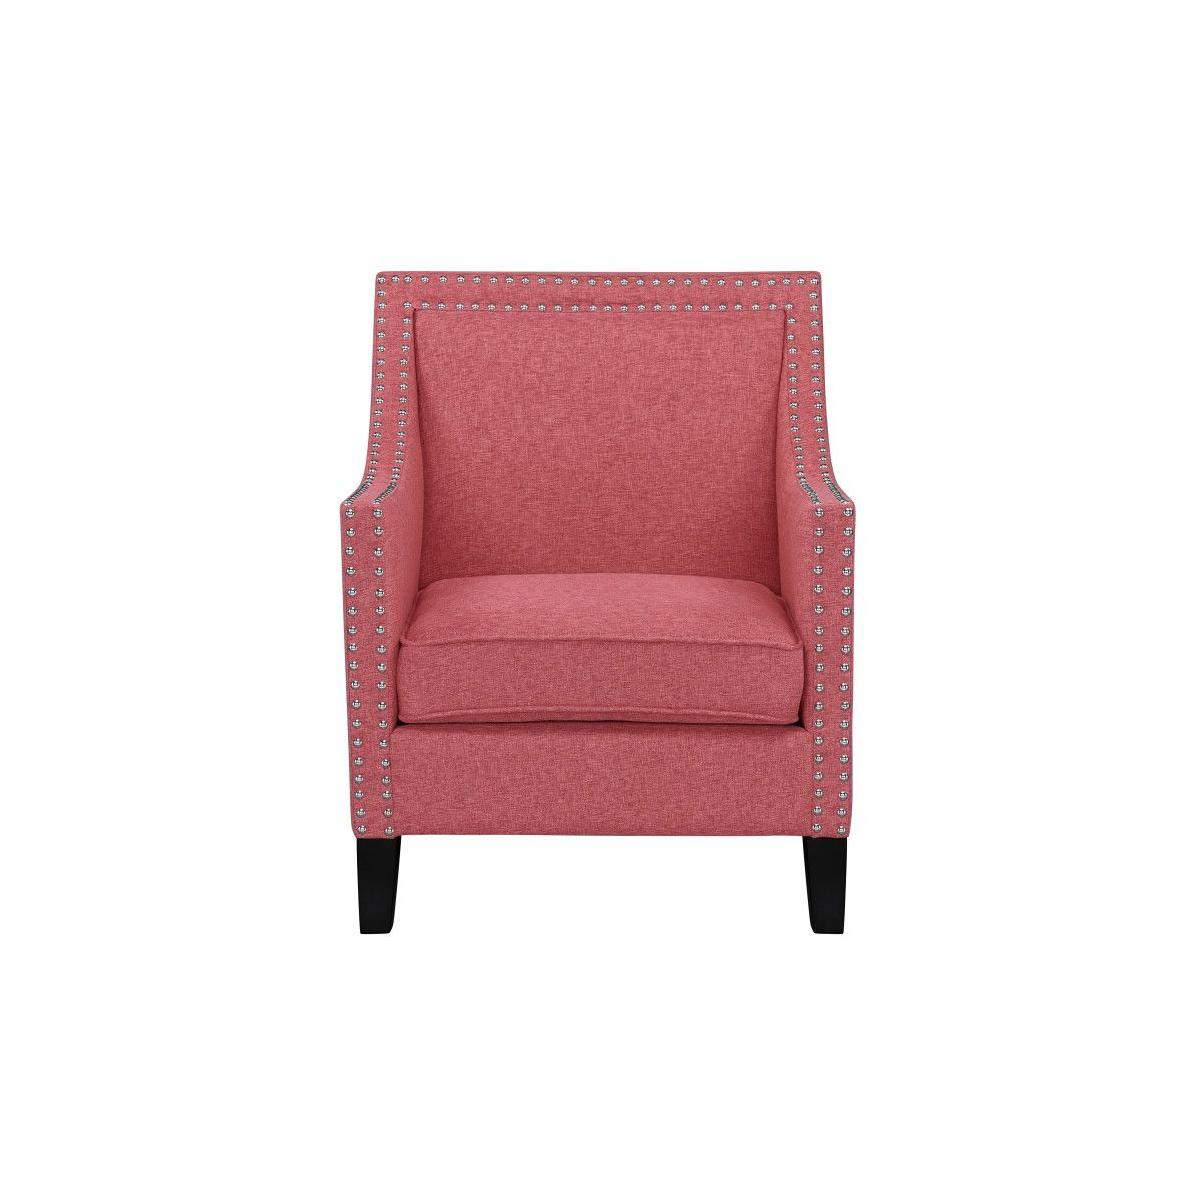 Hailey Accent Chair, Nectar